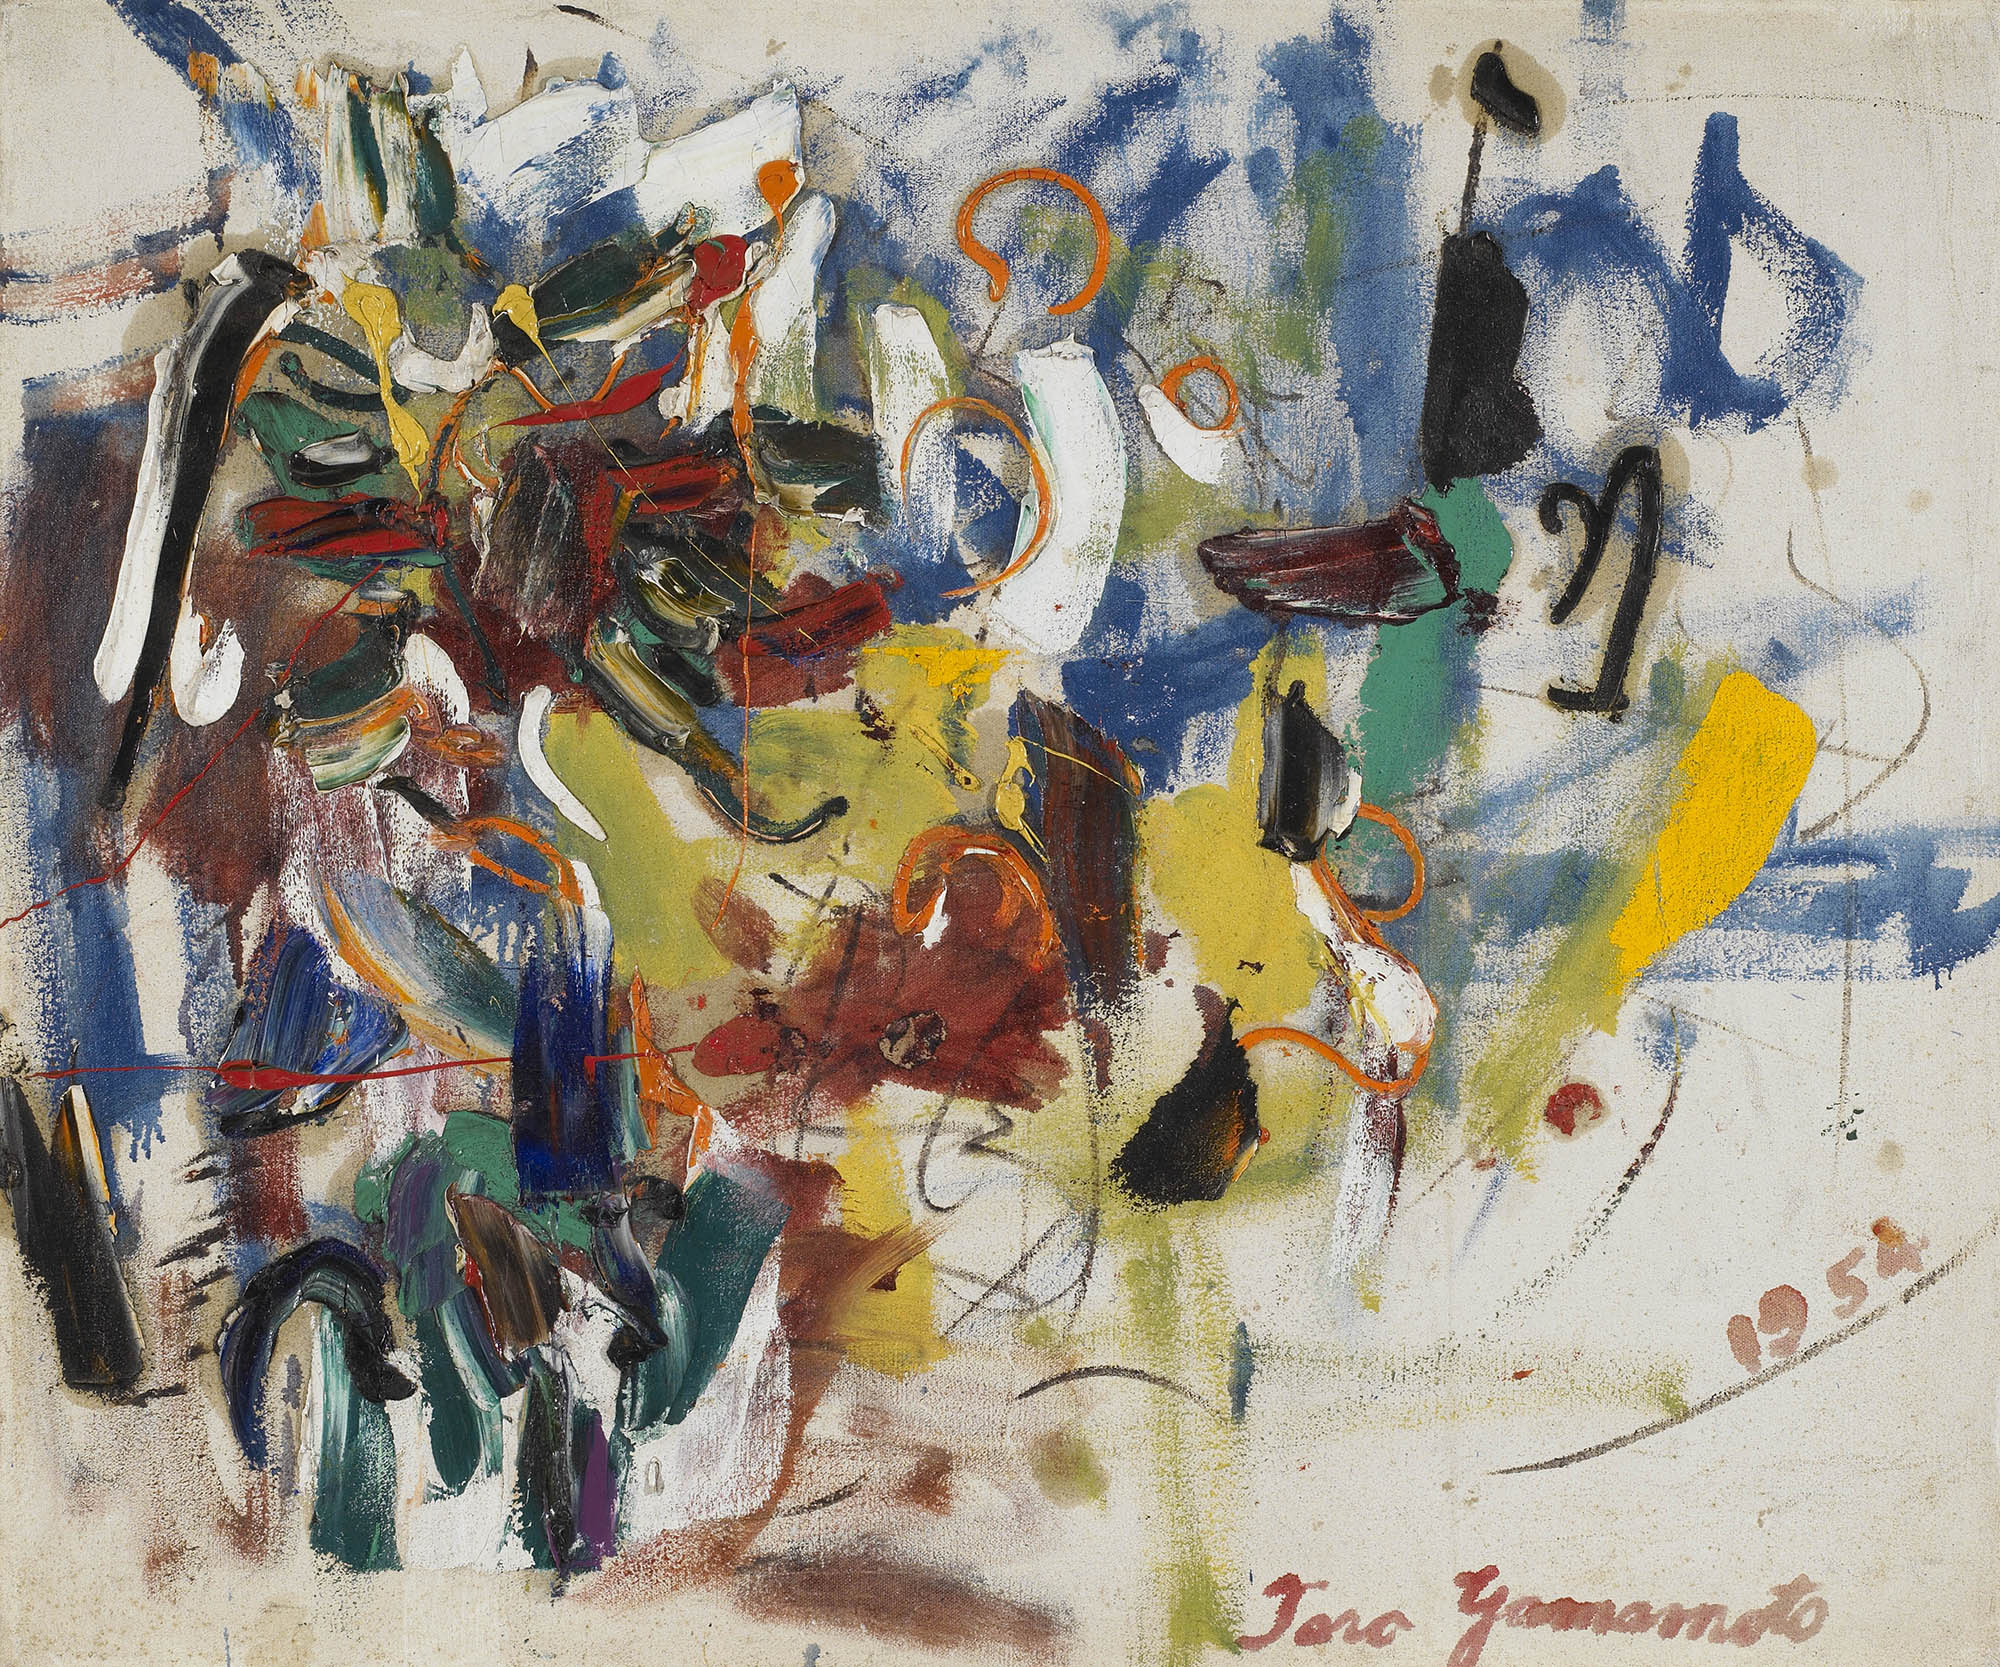 Untitled, 1954  , oil on canvas, 25 x 30 inches